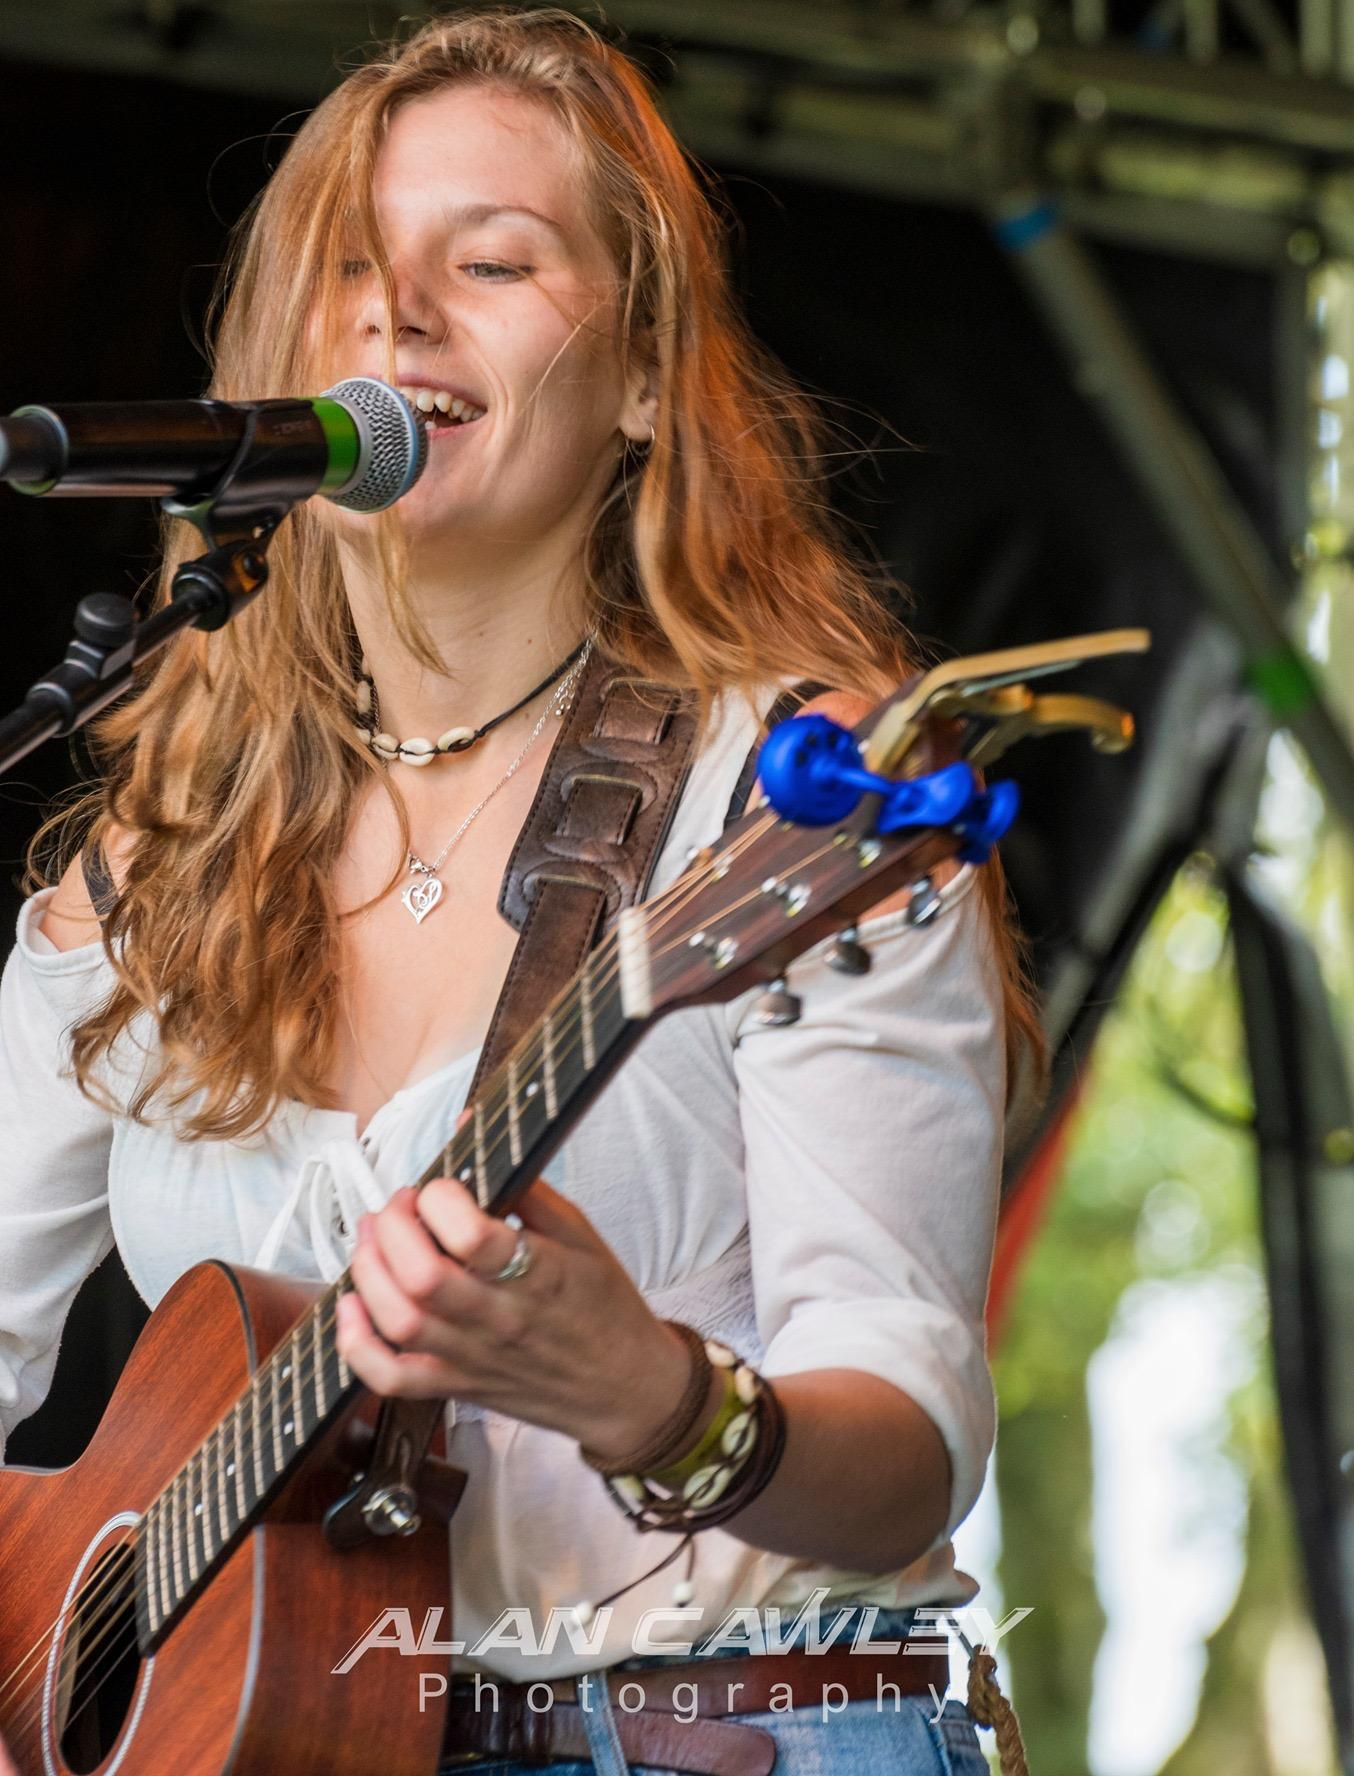 Follow the  Australian Singer Songwriter, Zoee and catch her Tour dates - Track her on BandsInTown via the link